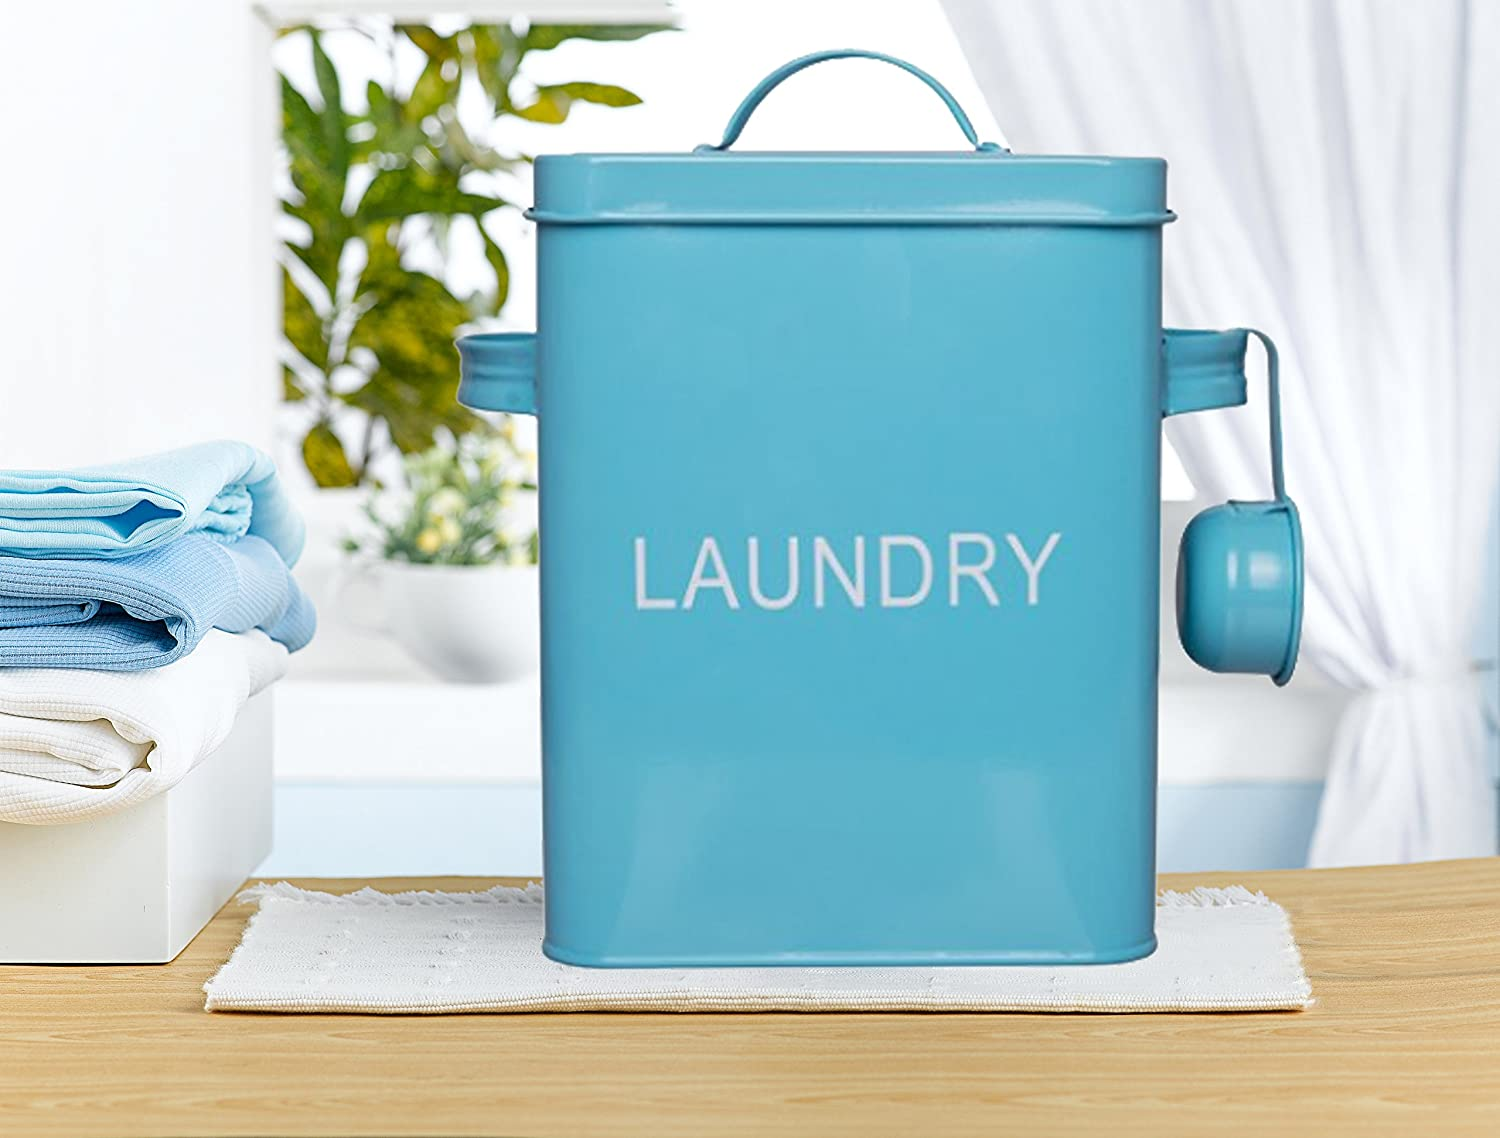 A Turquoise Washing Detergent Container is Just One of Many Clever Ideas for Laundry Room